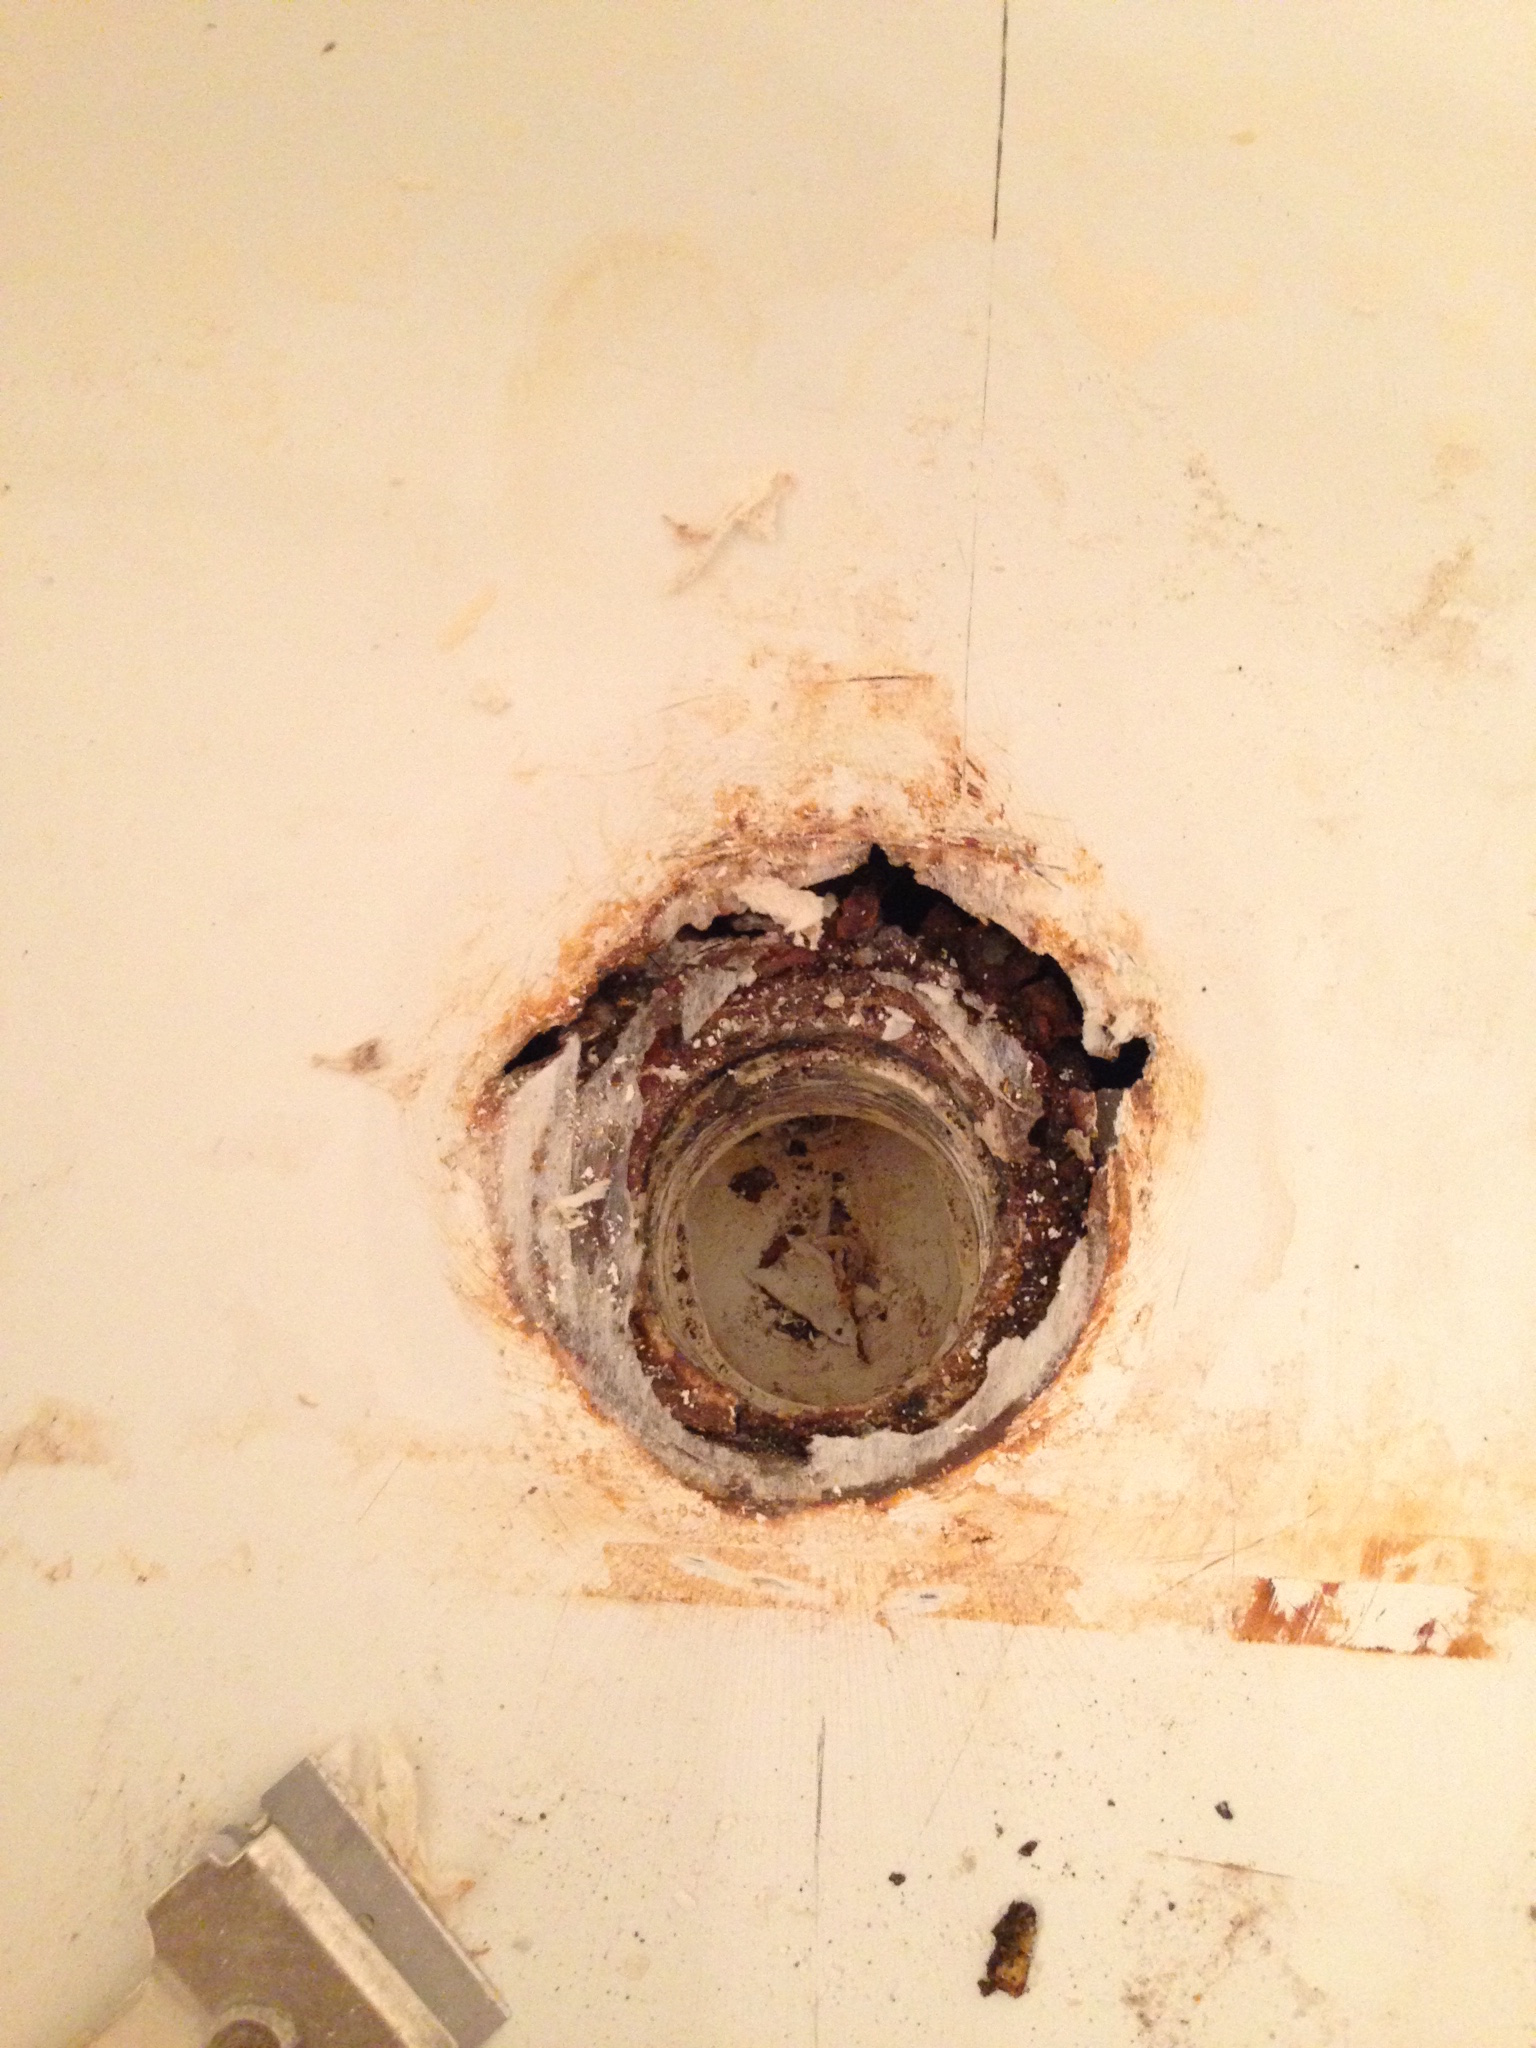 Bathtub Surface Repair & Refinishing in MD - Free Quote